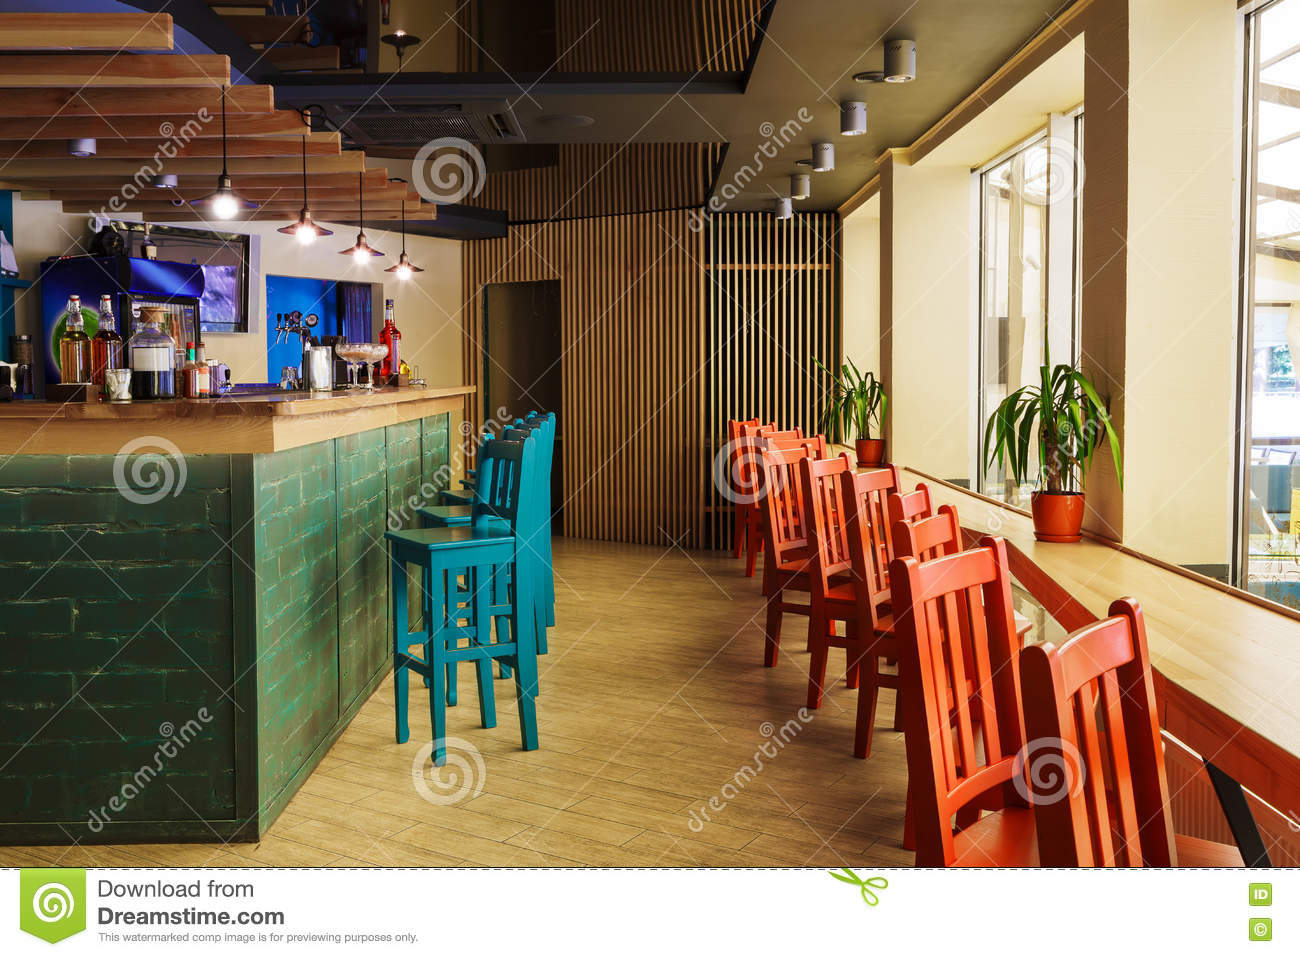 Modern Restaurant, Bar Or Cafe Interior Stock Image - Image of ...